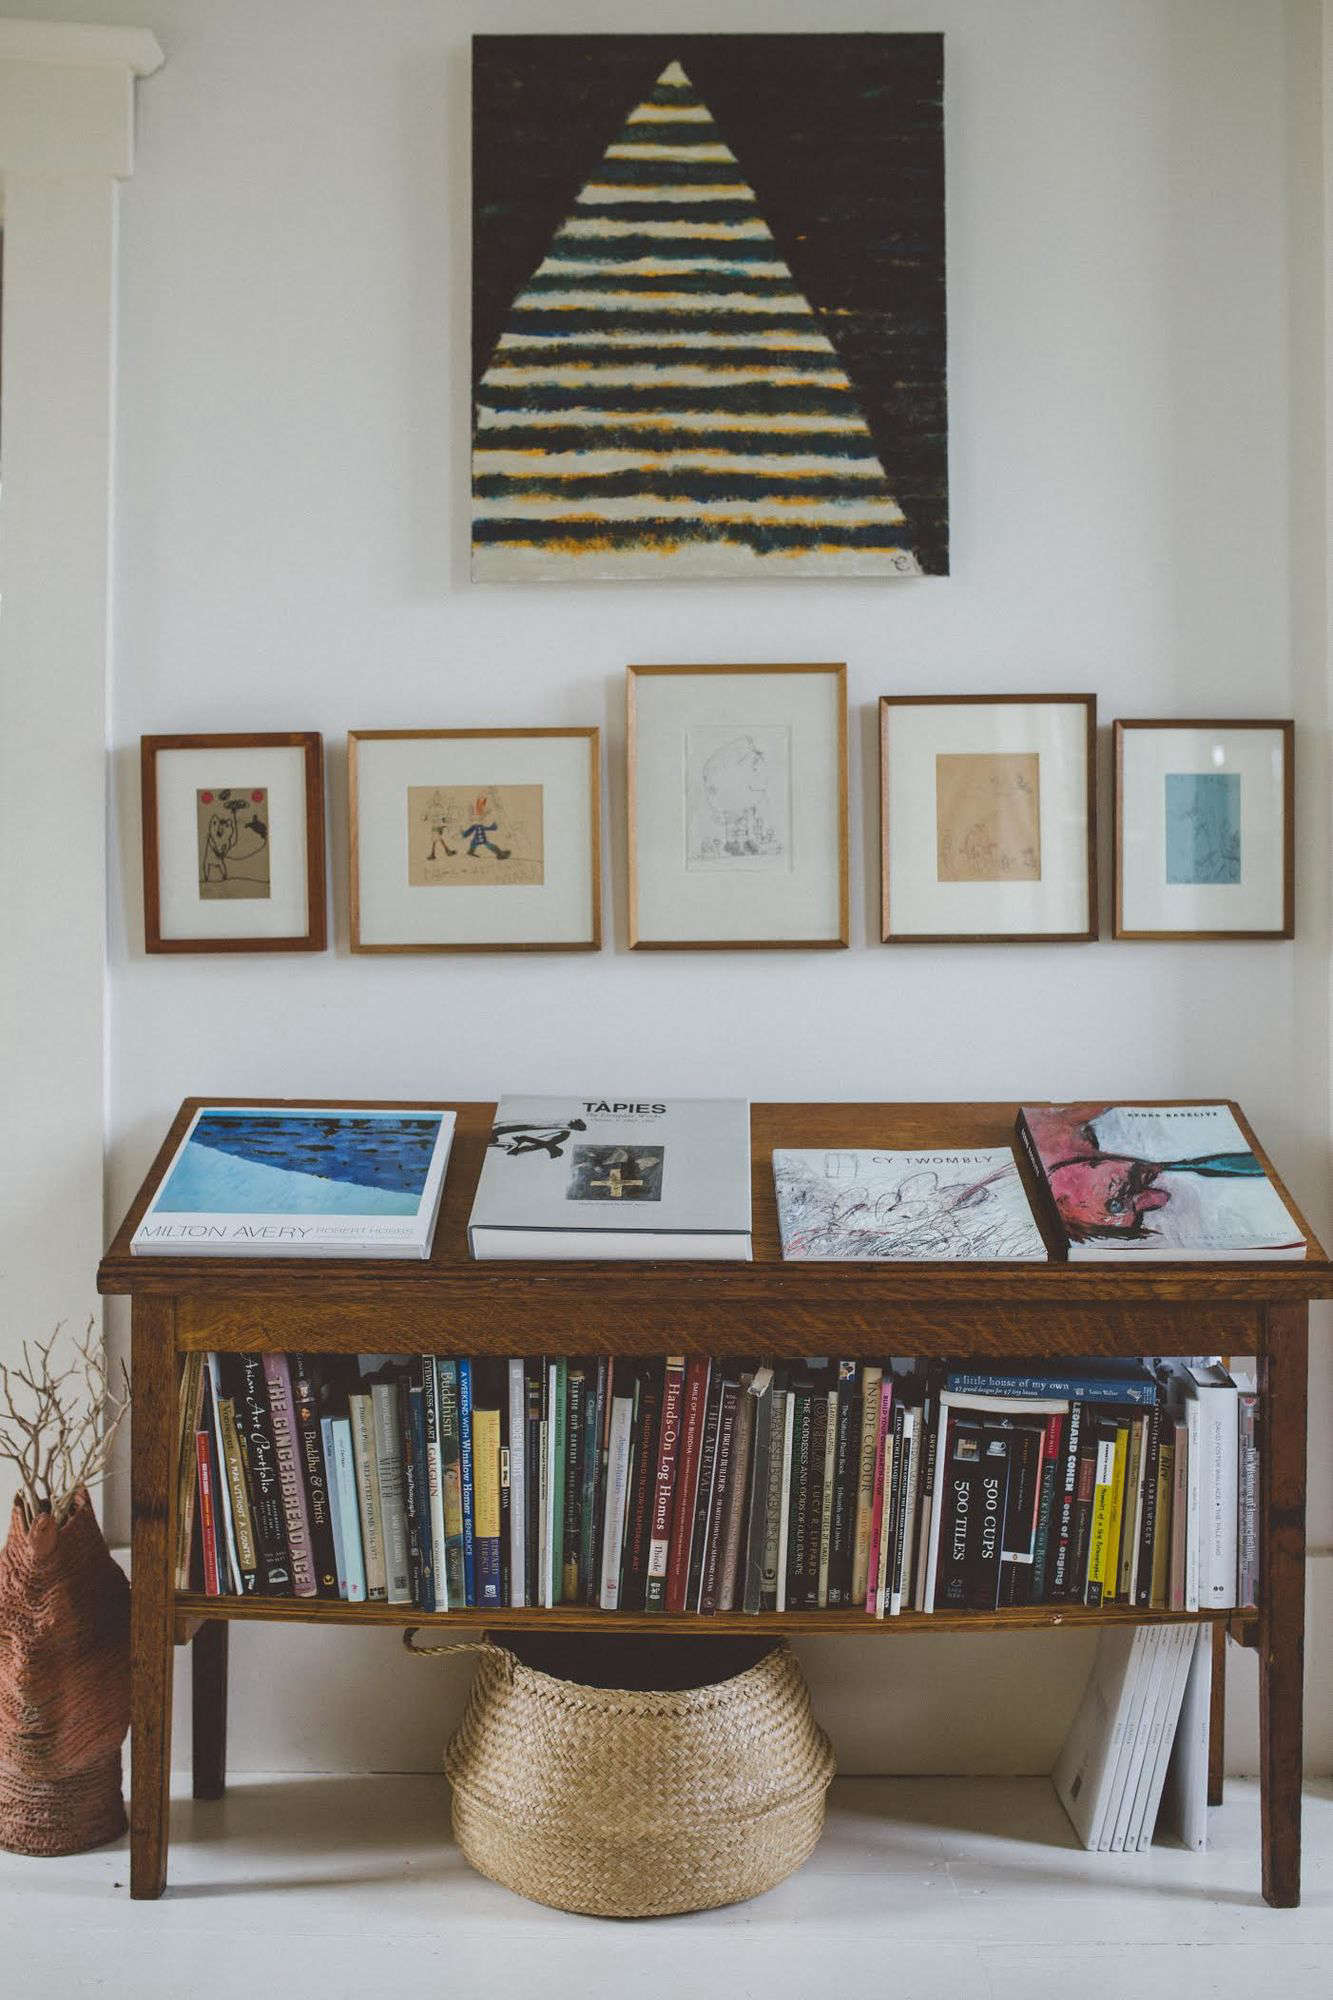 a foldable bookshelf of topper bookshelves and cost bruno original nursery sapien for rainaldi tree sculpture less exquisite about low ideas look eiffel version my tower baby attractive star both spine design the reach formalbeauteous within bookcase